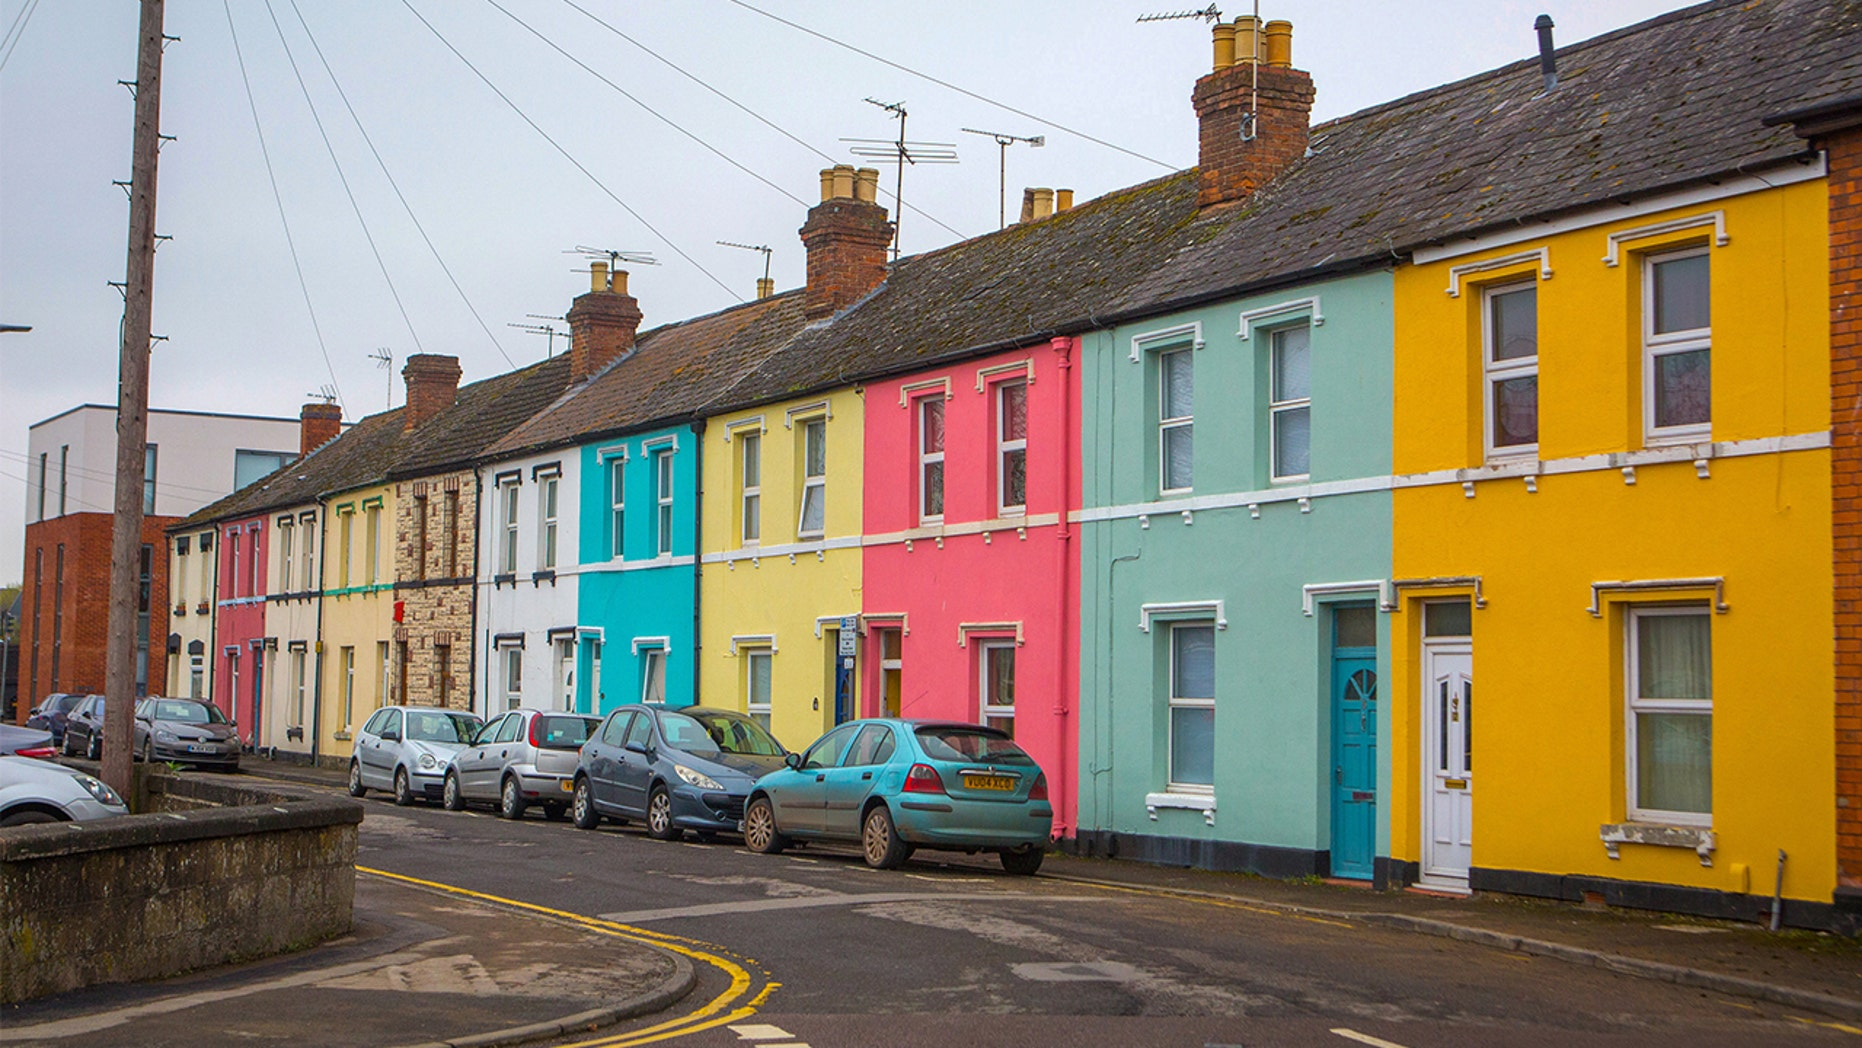 The residents of this neighborhood all painted their homes a different color and said it helped boost their mood.